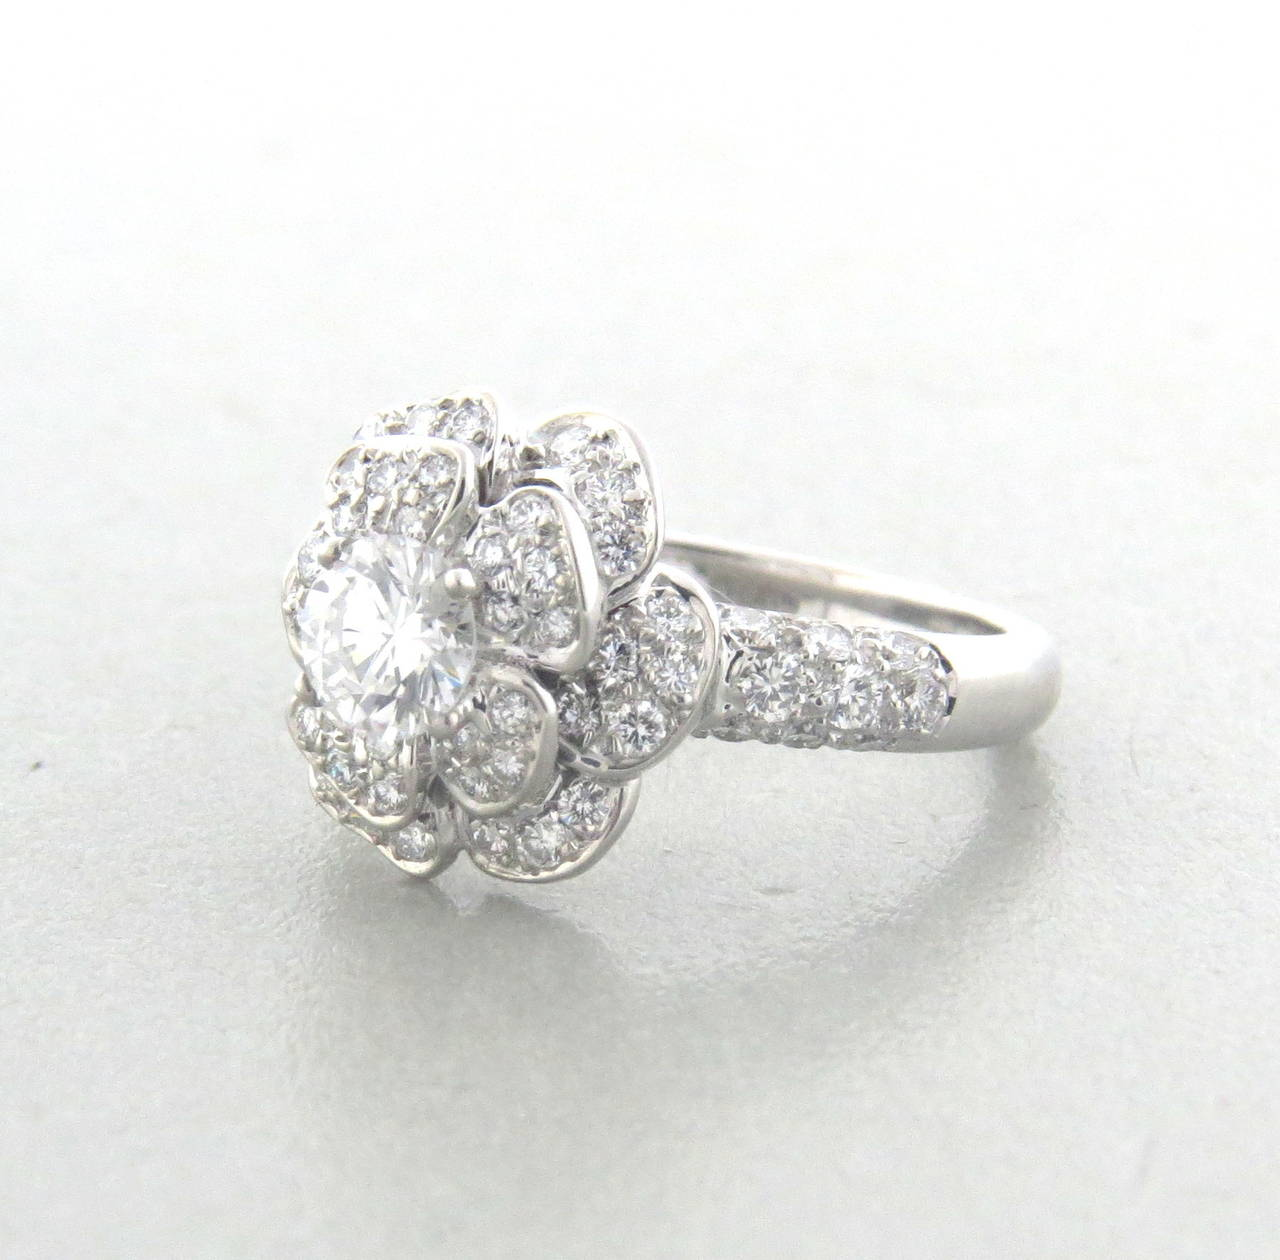 Chanel Camellia Diamond Gold Flower Engagement Ring at 1stdibs